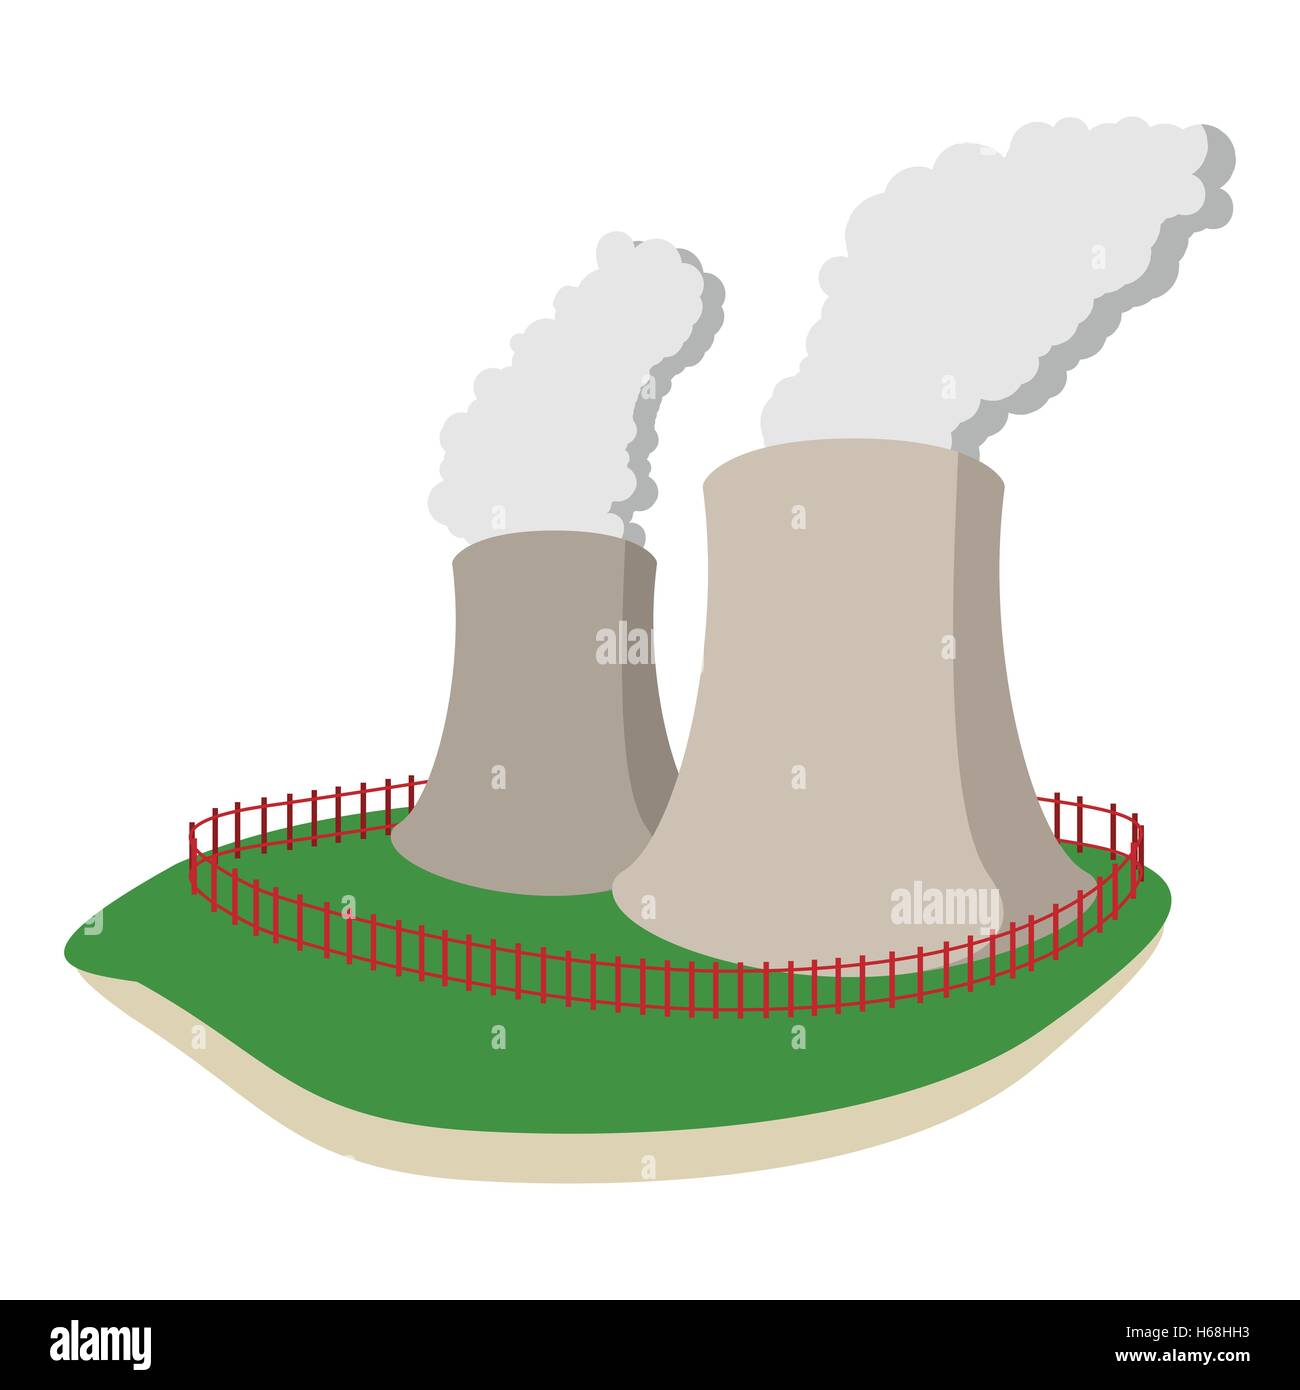 Thermal Power Station Stock Vector Images Alamy Nuclear Plant Diagram Animation Smoking Pipes Of